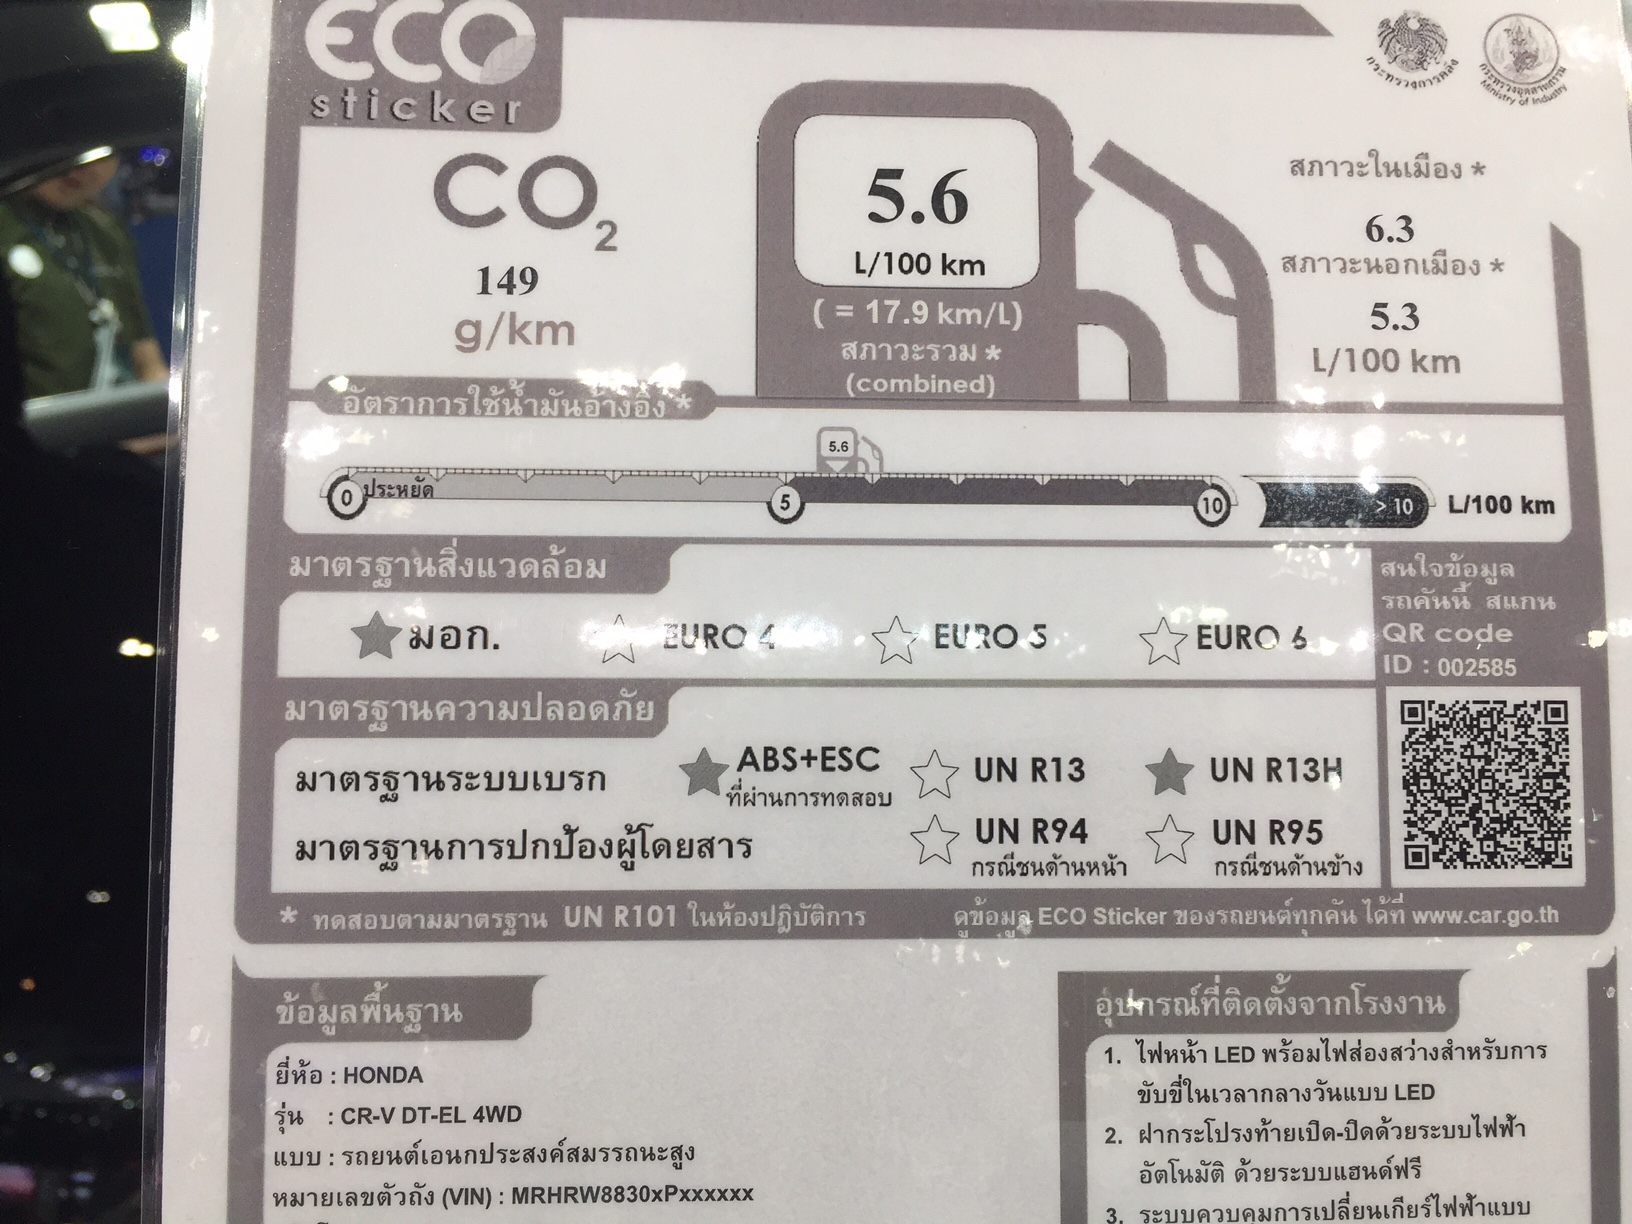 Honda CR-V Diesel Eco Label